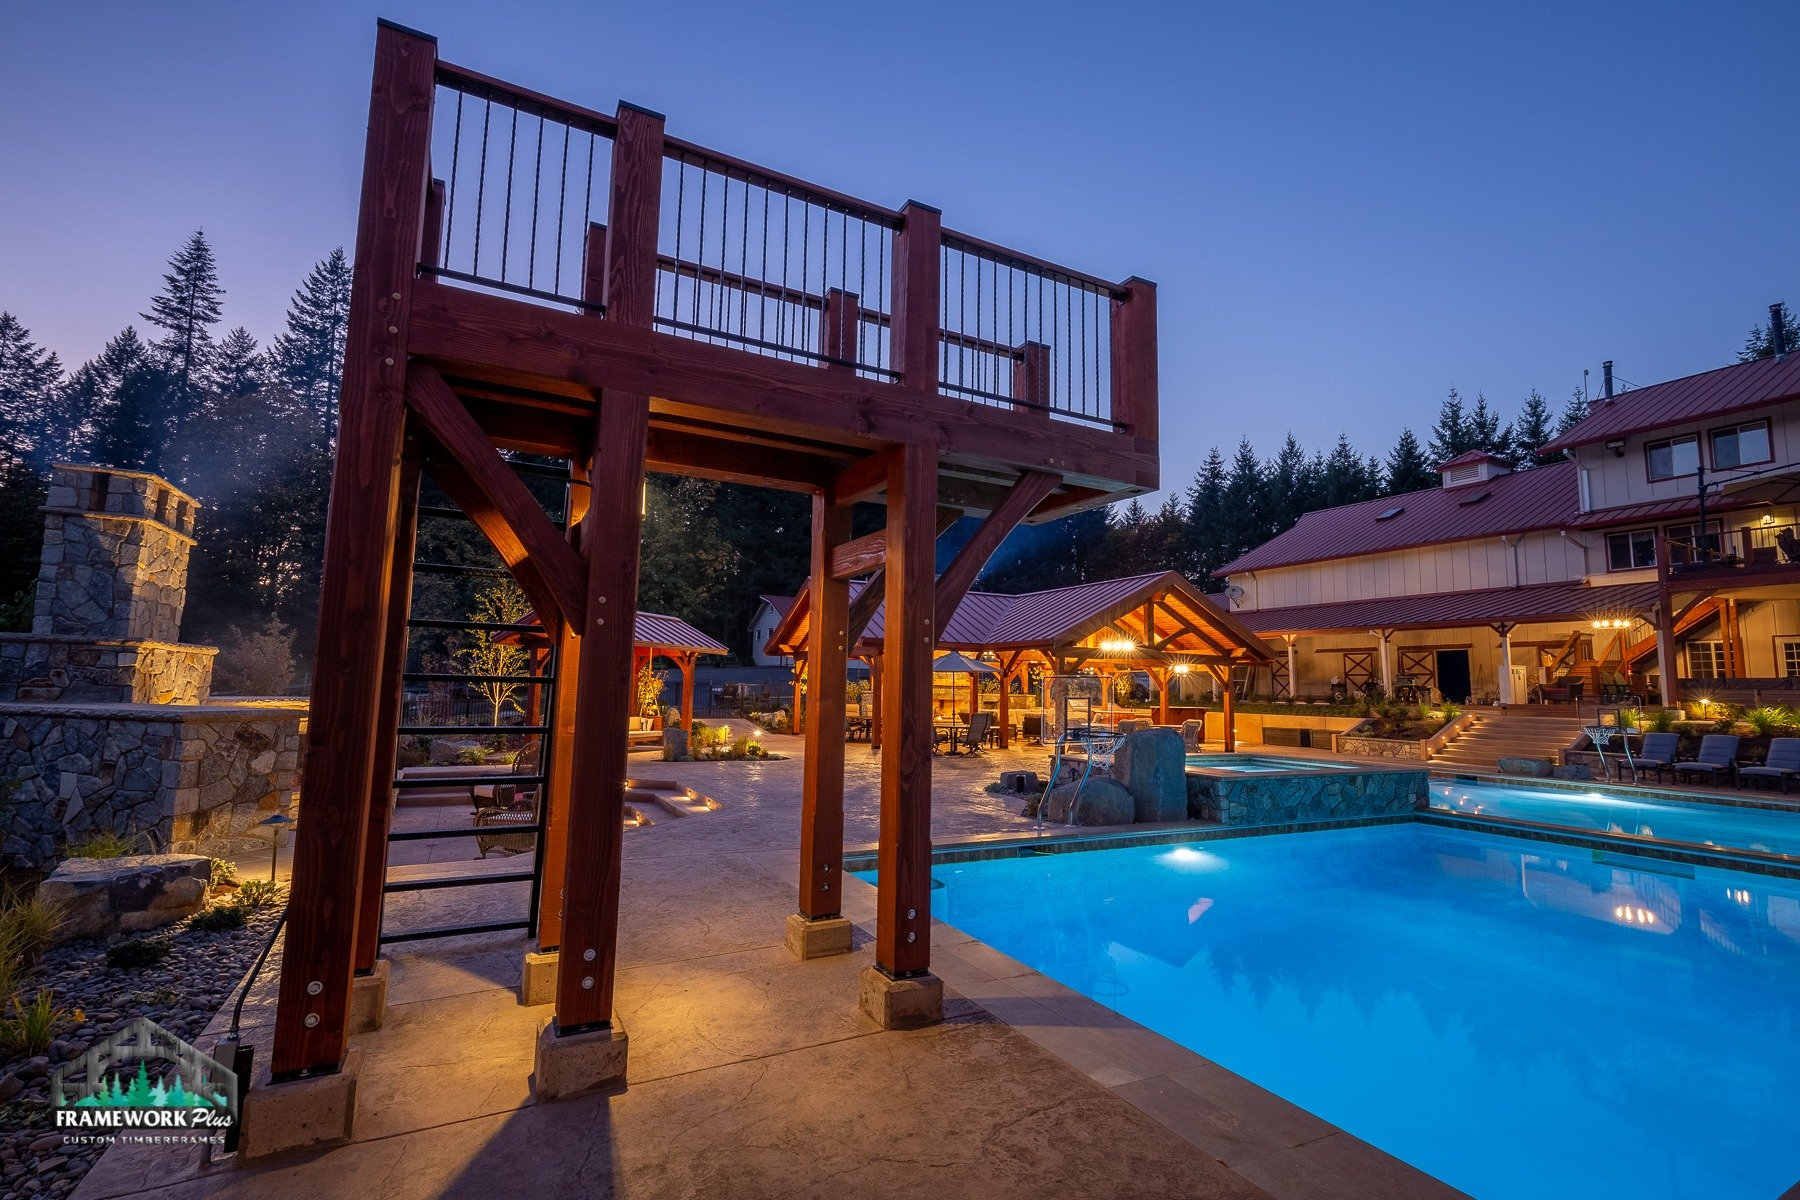 Willamette Valley, OR Diving Board and Pavilion